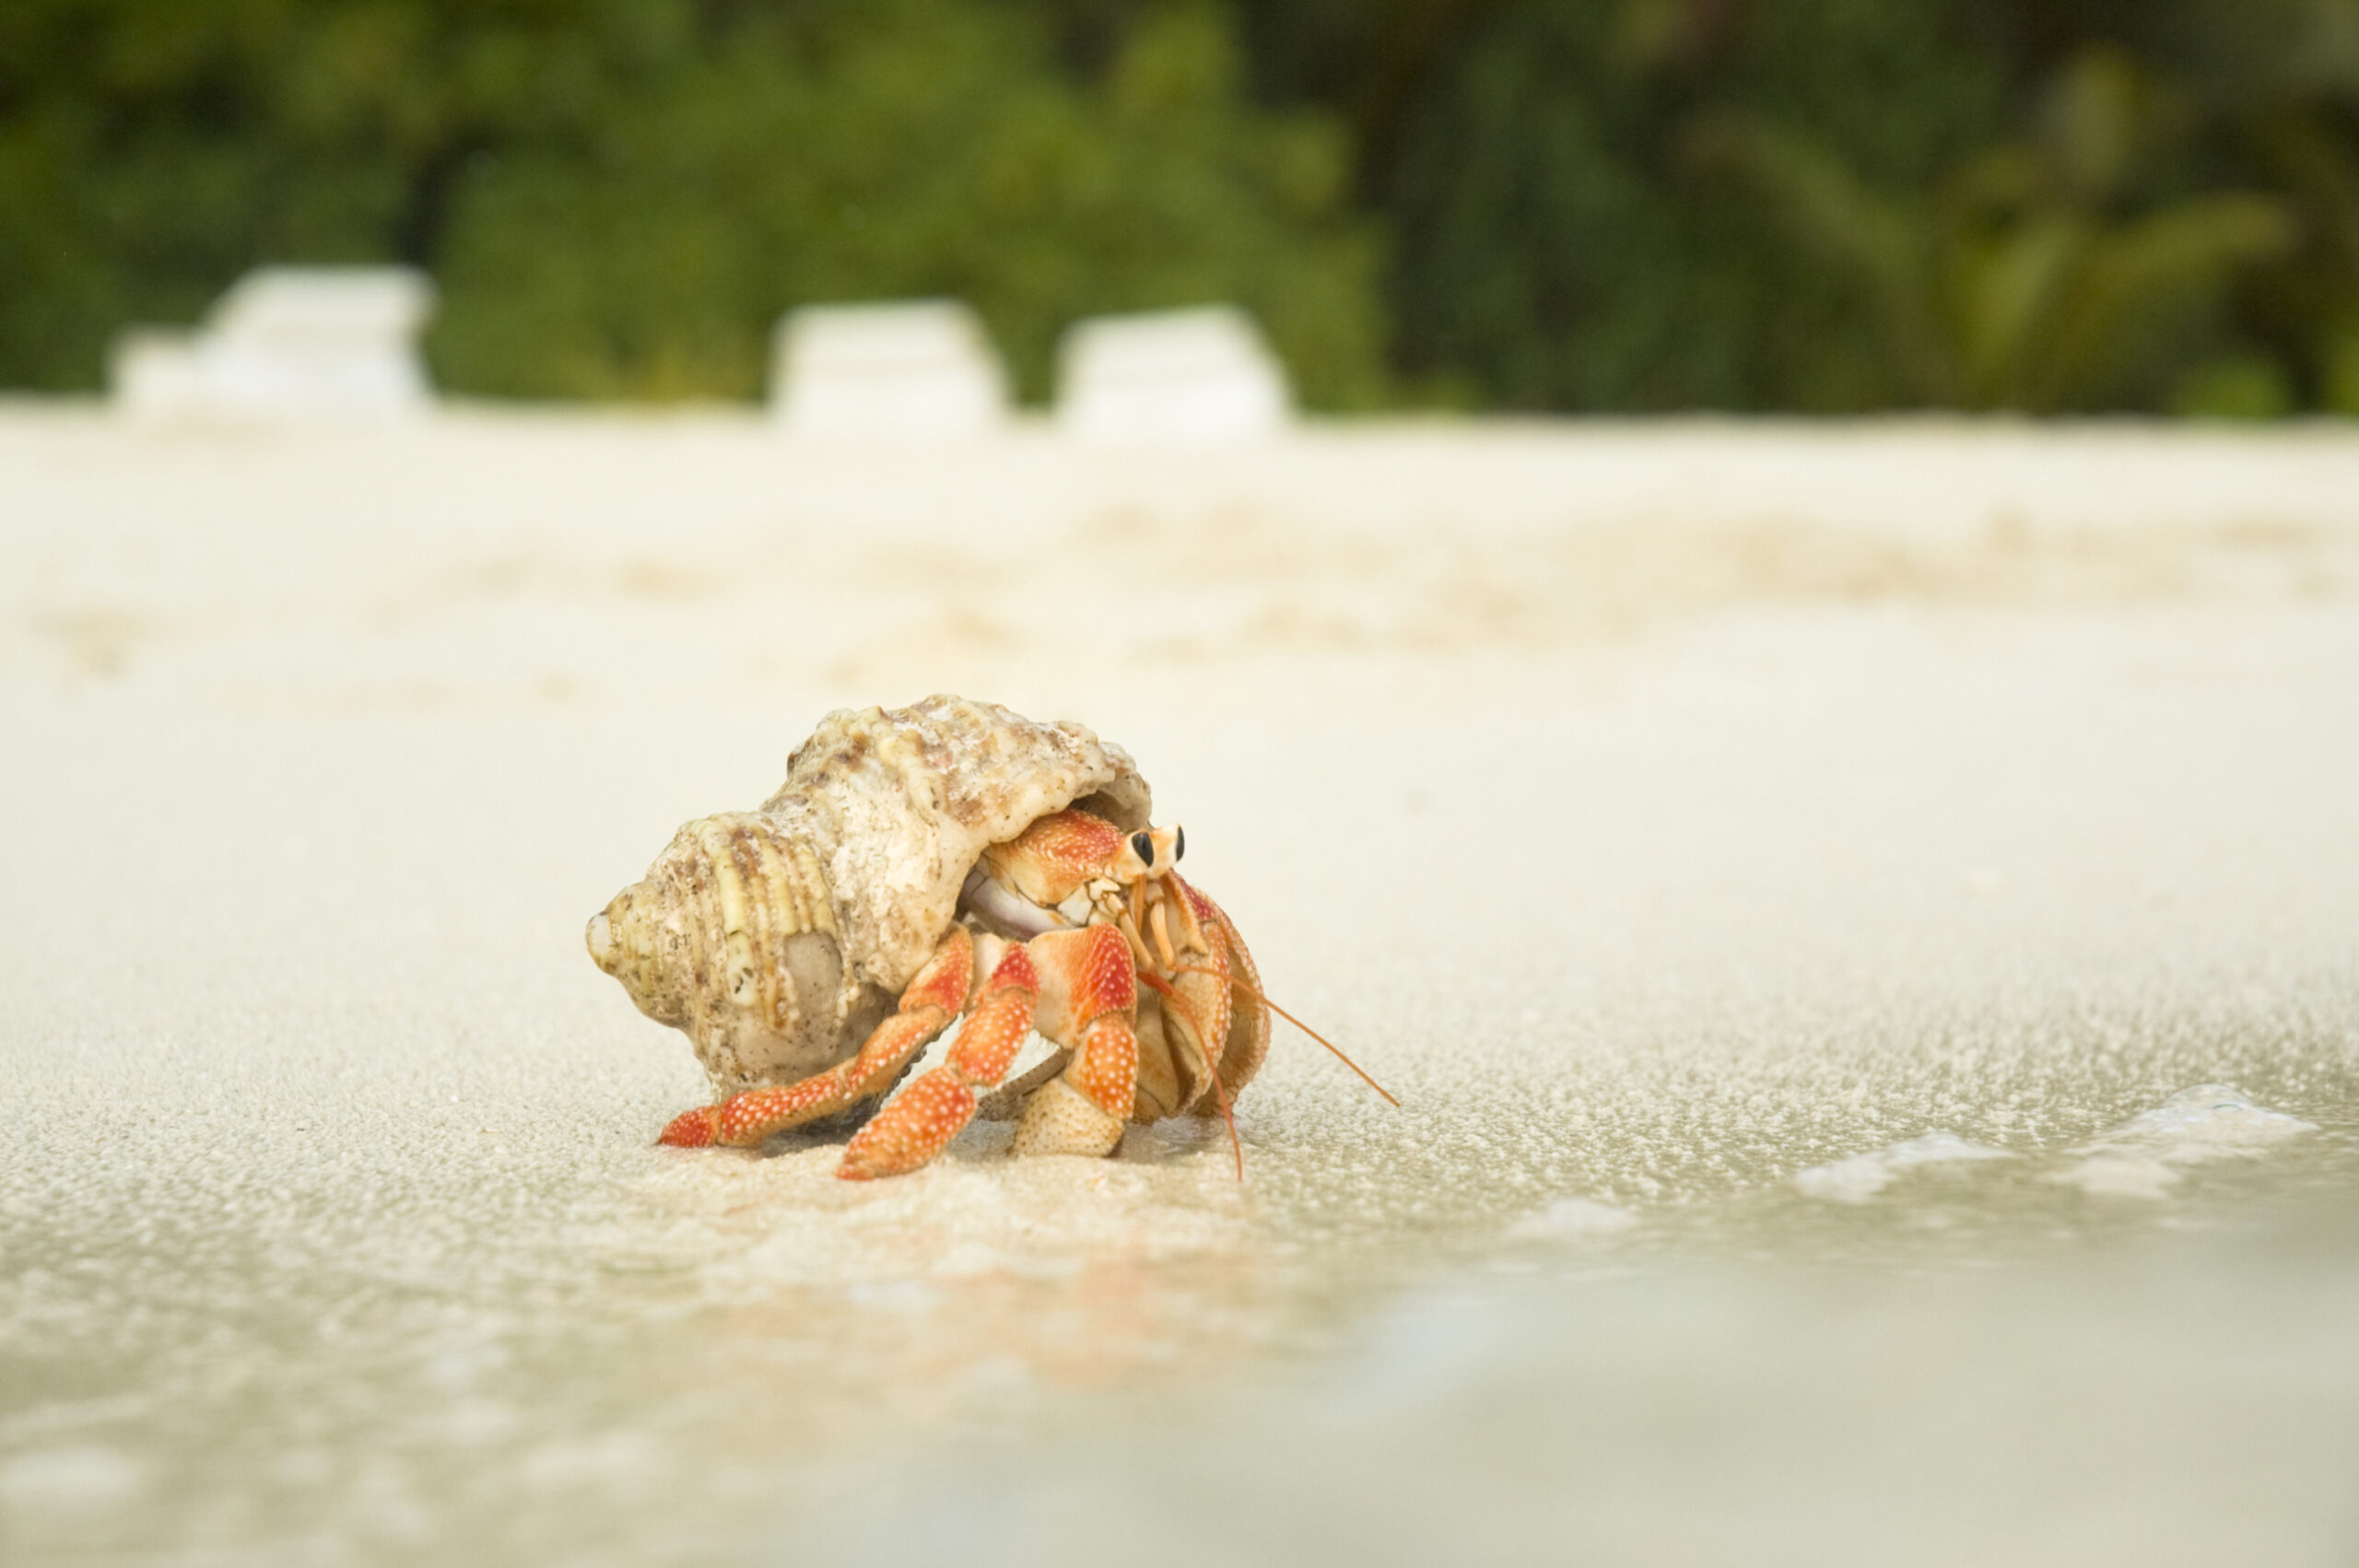 hermit crab standing by the shore of the ocean